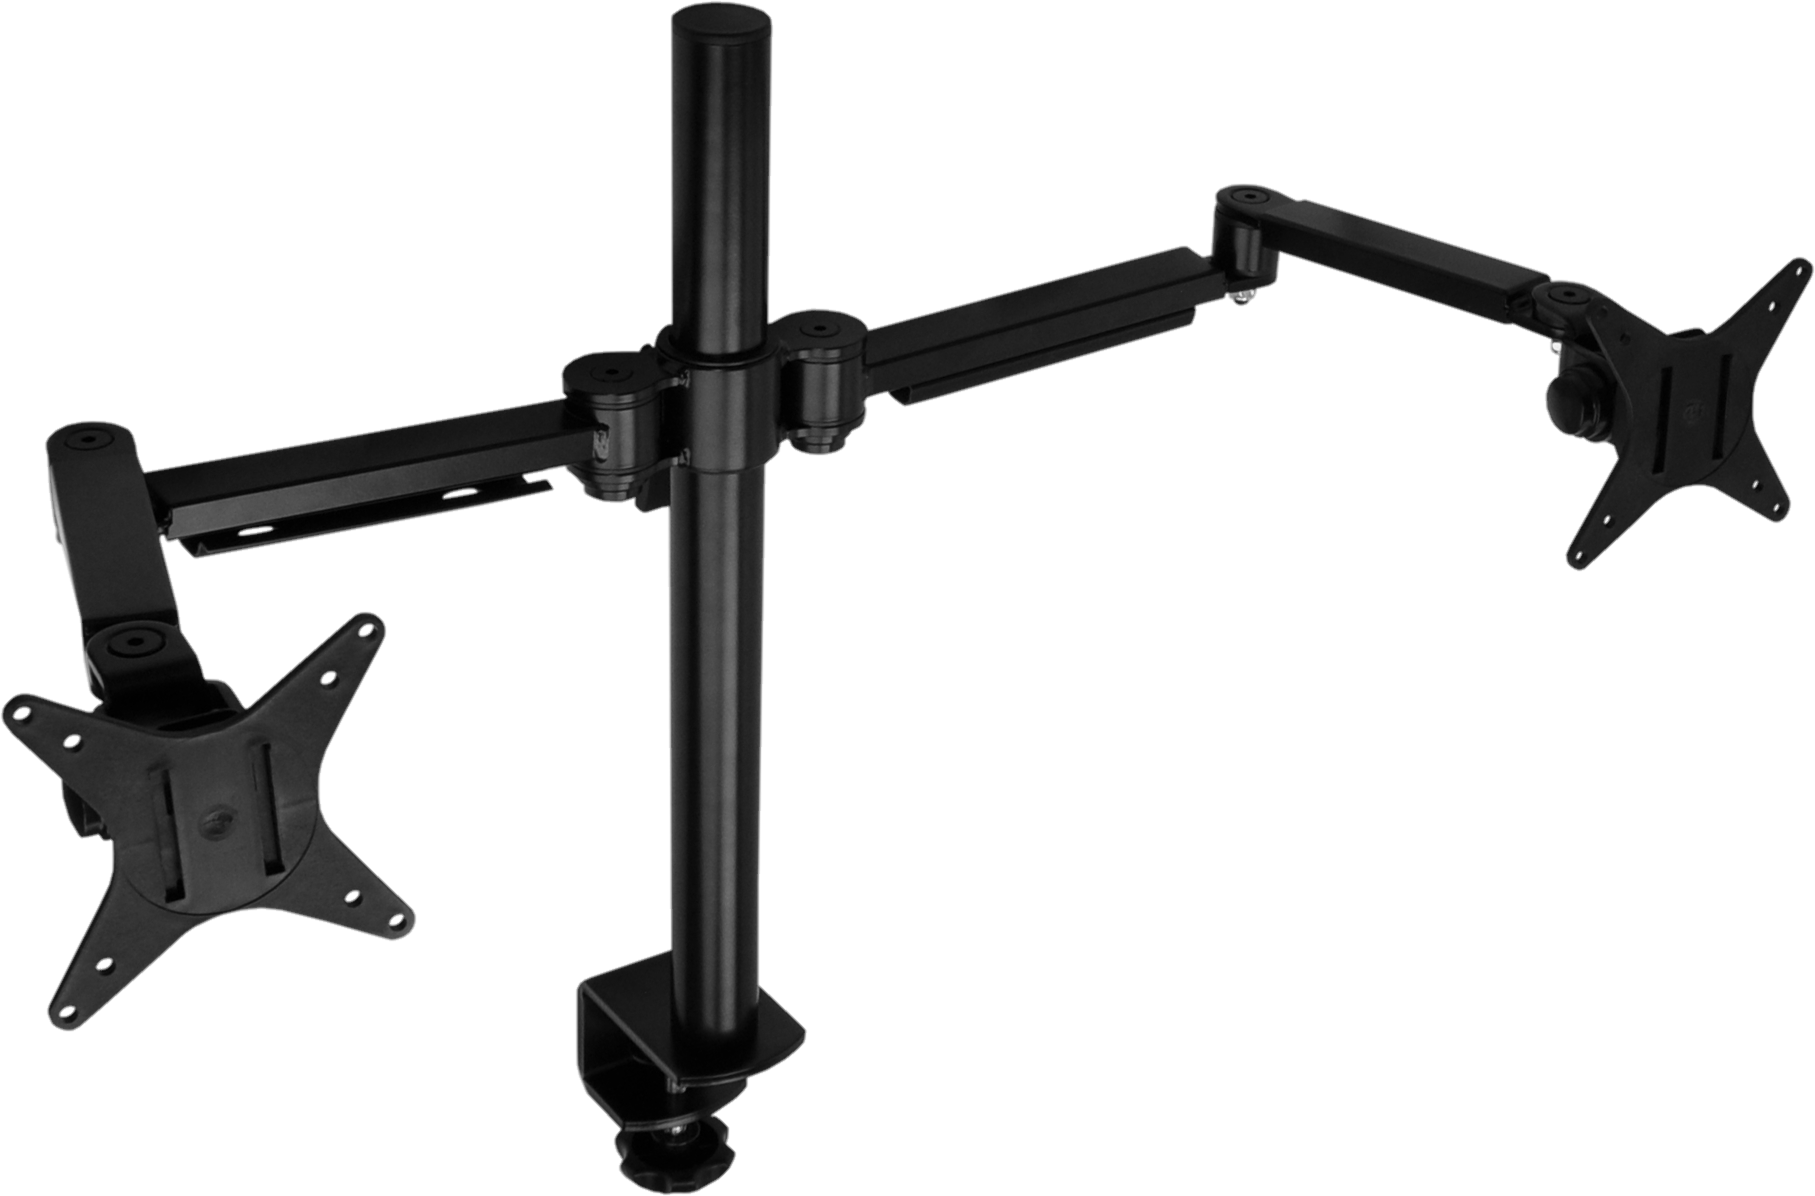 SLR Camera arm with clamp for Cameras//Monitor//Fill Light//Microphone 14cm Length fo sa 11 inch Magic Arm 10 kg Load Capacity